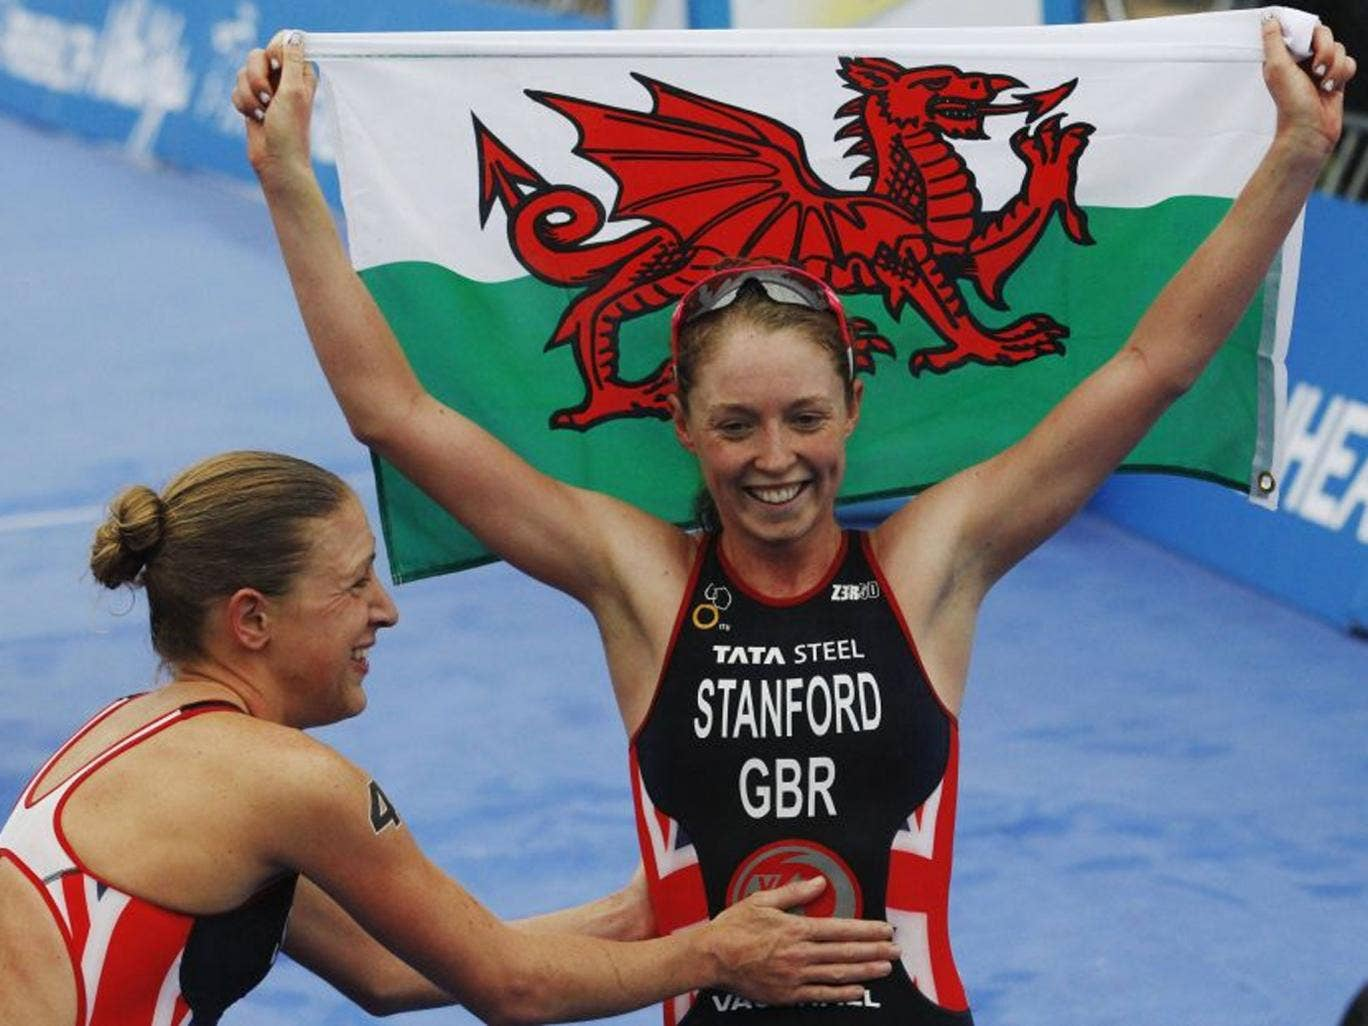 Golden girl: World champion Non Stanford raises the Welsh flag in triumph and gets a pat from silver medallist Jodie Stimpson